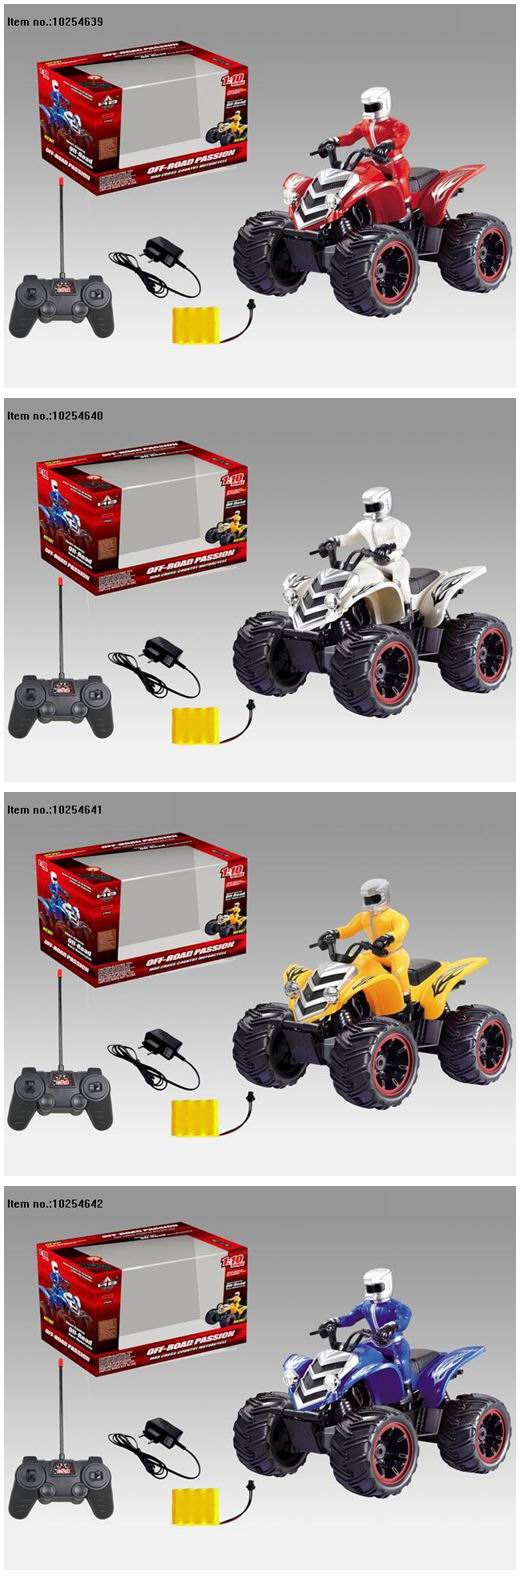 Four Function R/C Motorcycle Toys for Kids (include charging)